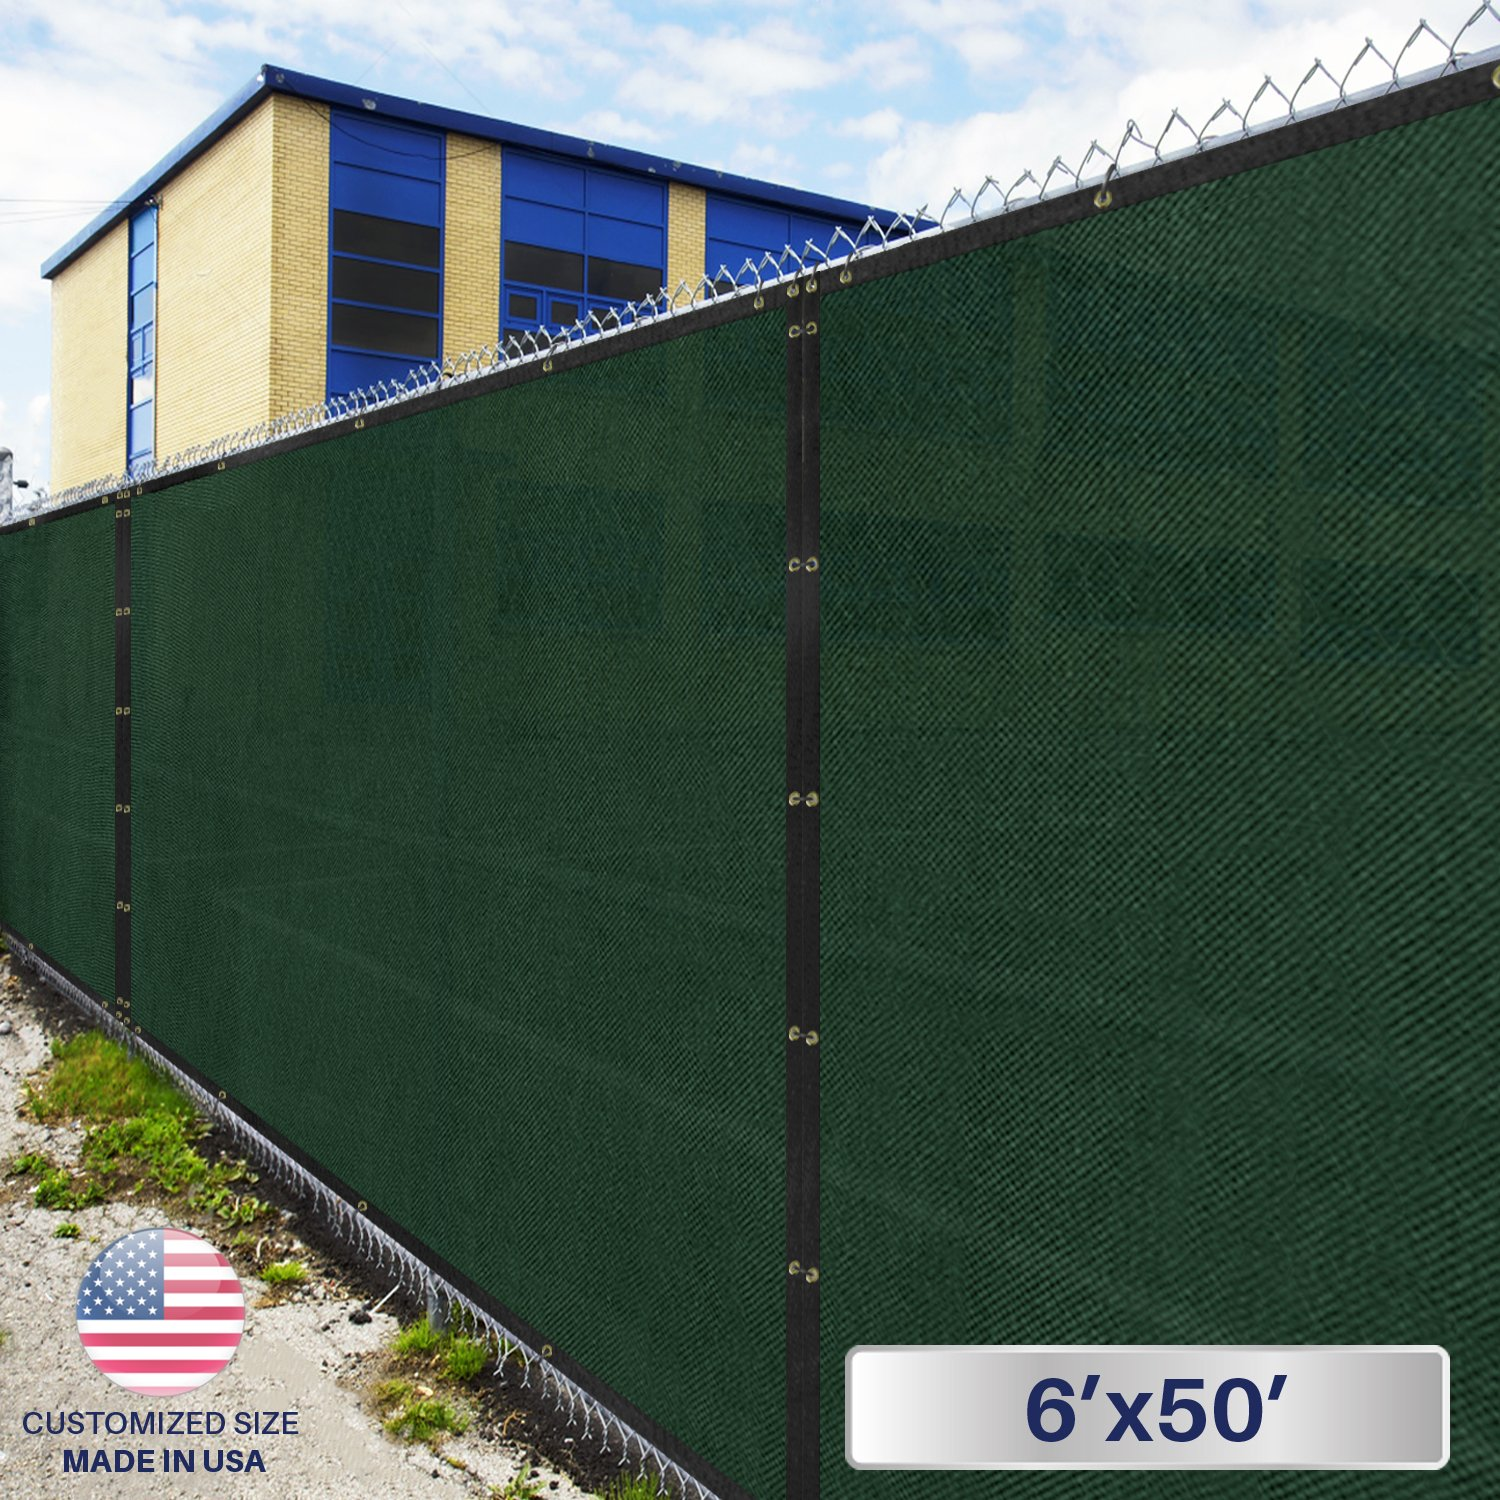 Privacy screen for chain link fences - Amazon Com Windscreen4less Heavy Duty Privacy Screen Fence In Color Solid Green 6 X 50 Brass Grommets W 3 Year Warranty 140 Gsm Customized Sizes